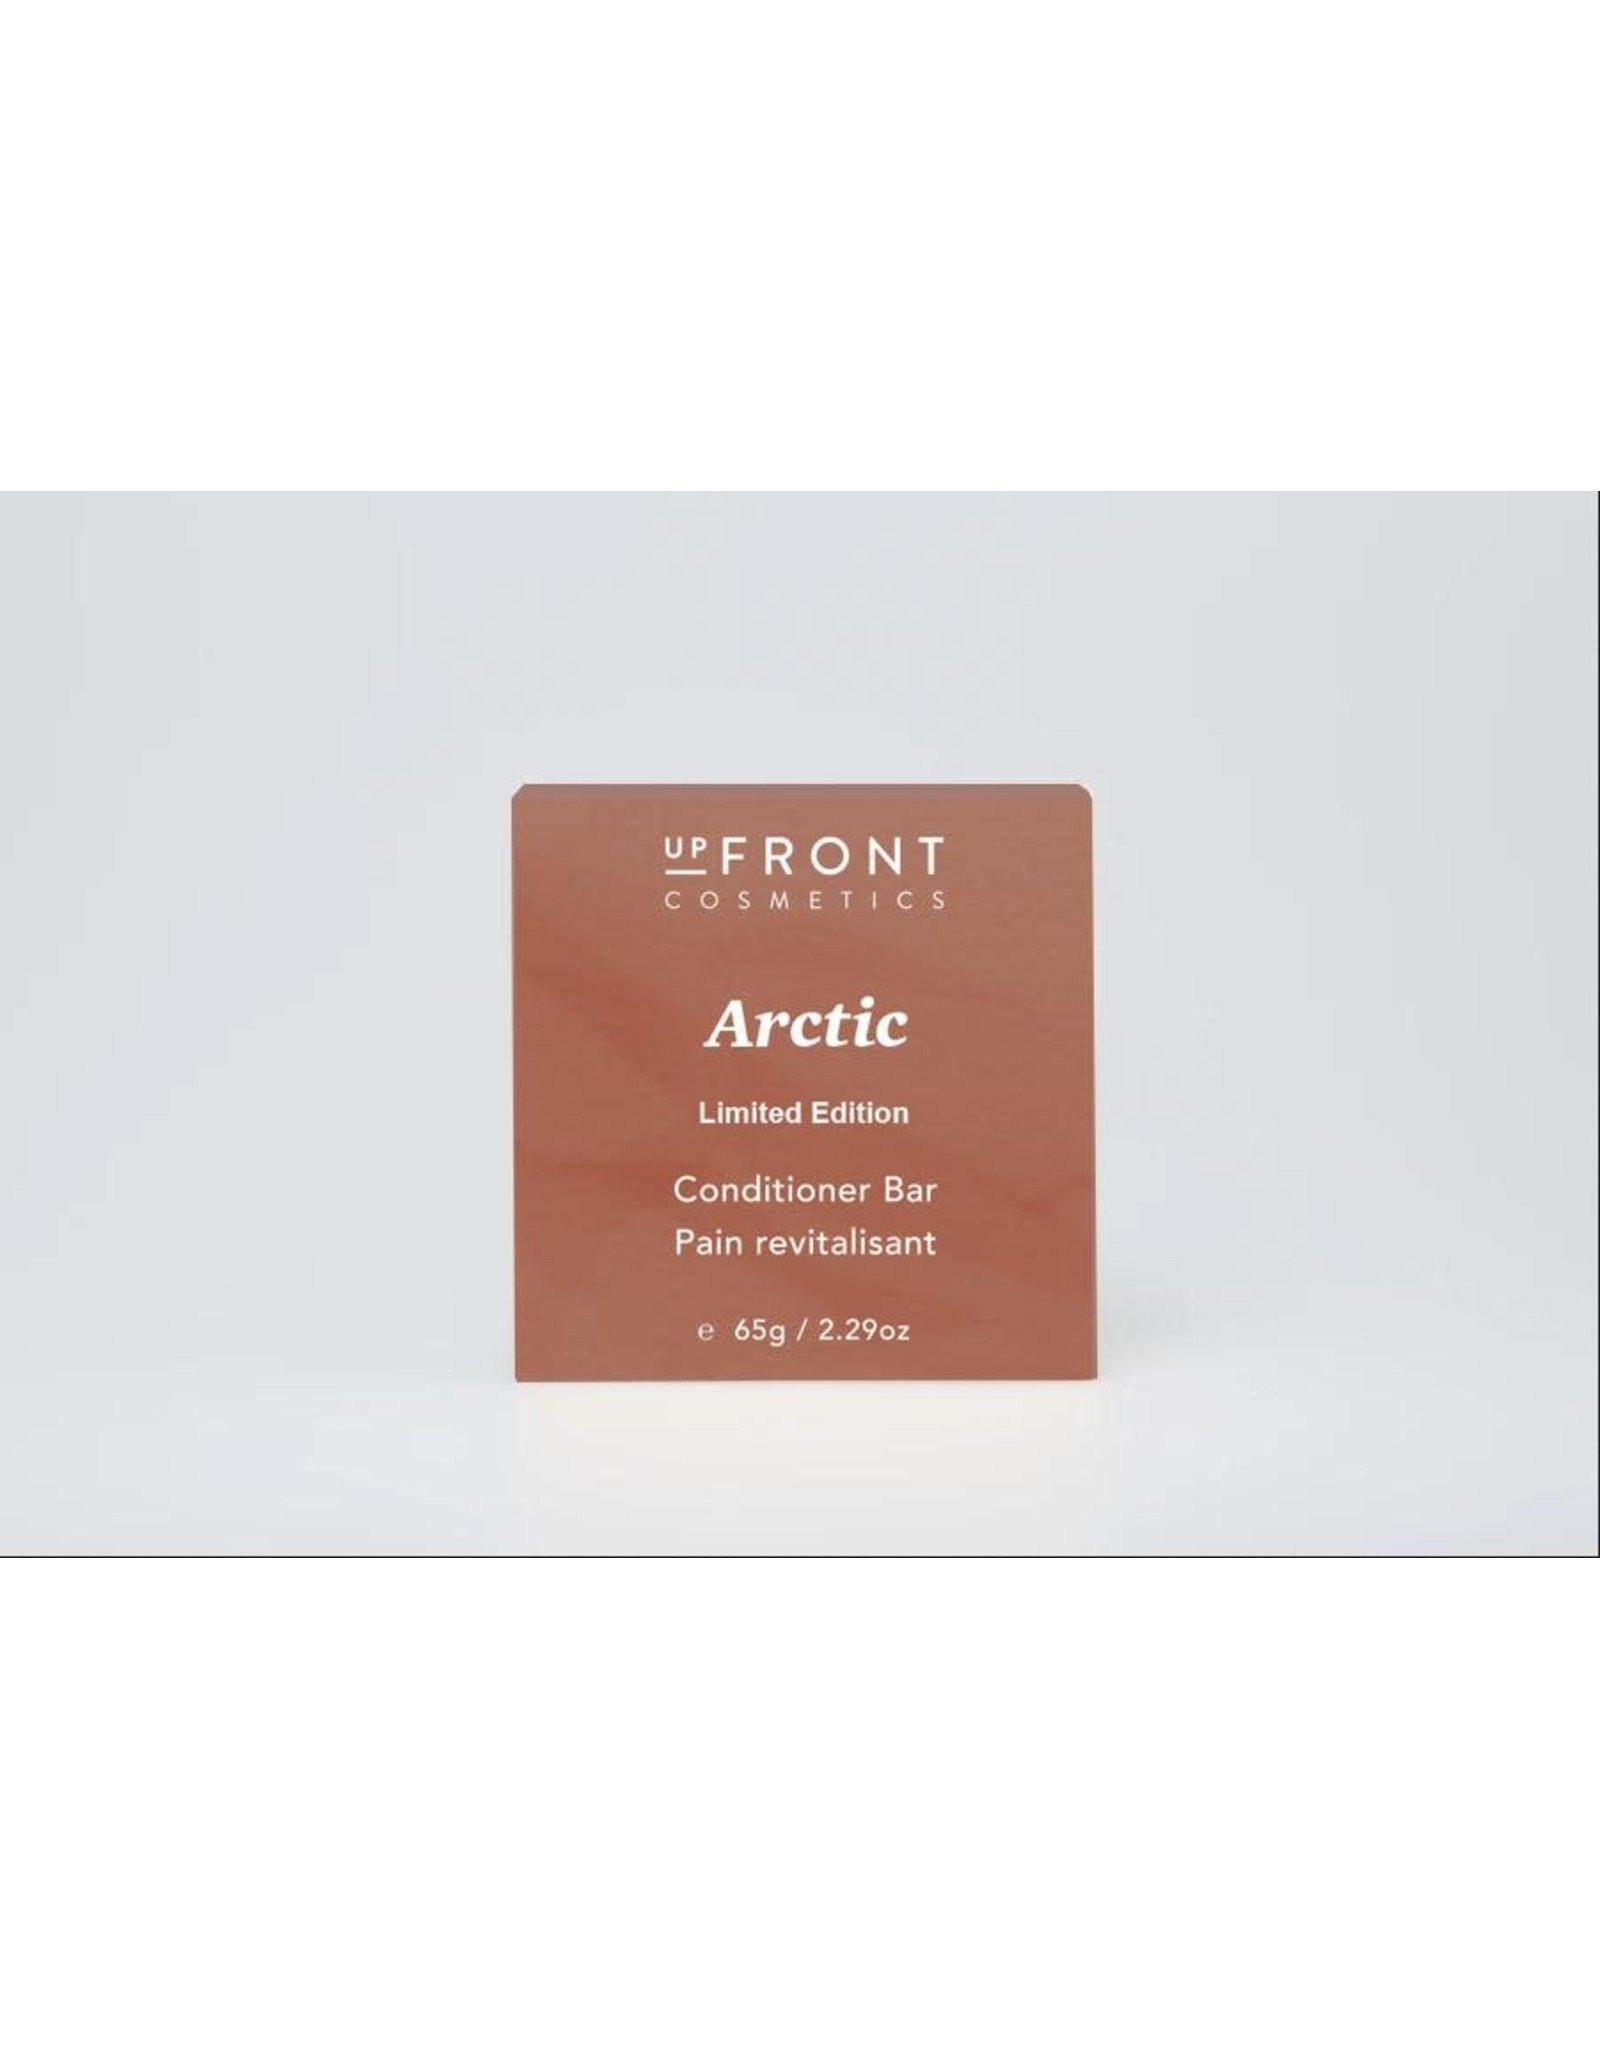 Upfront Cosmetics Limited Edition Conditioner Bar by Upfront Cosmetics